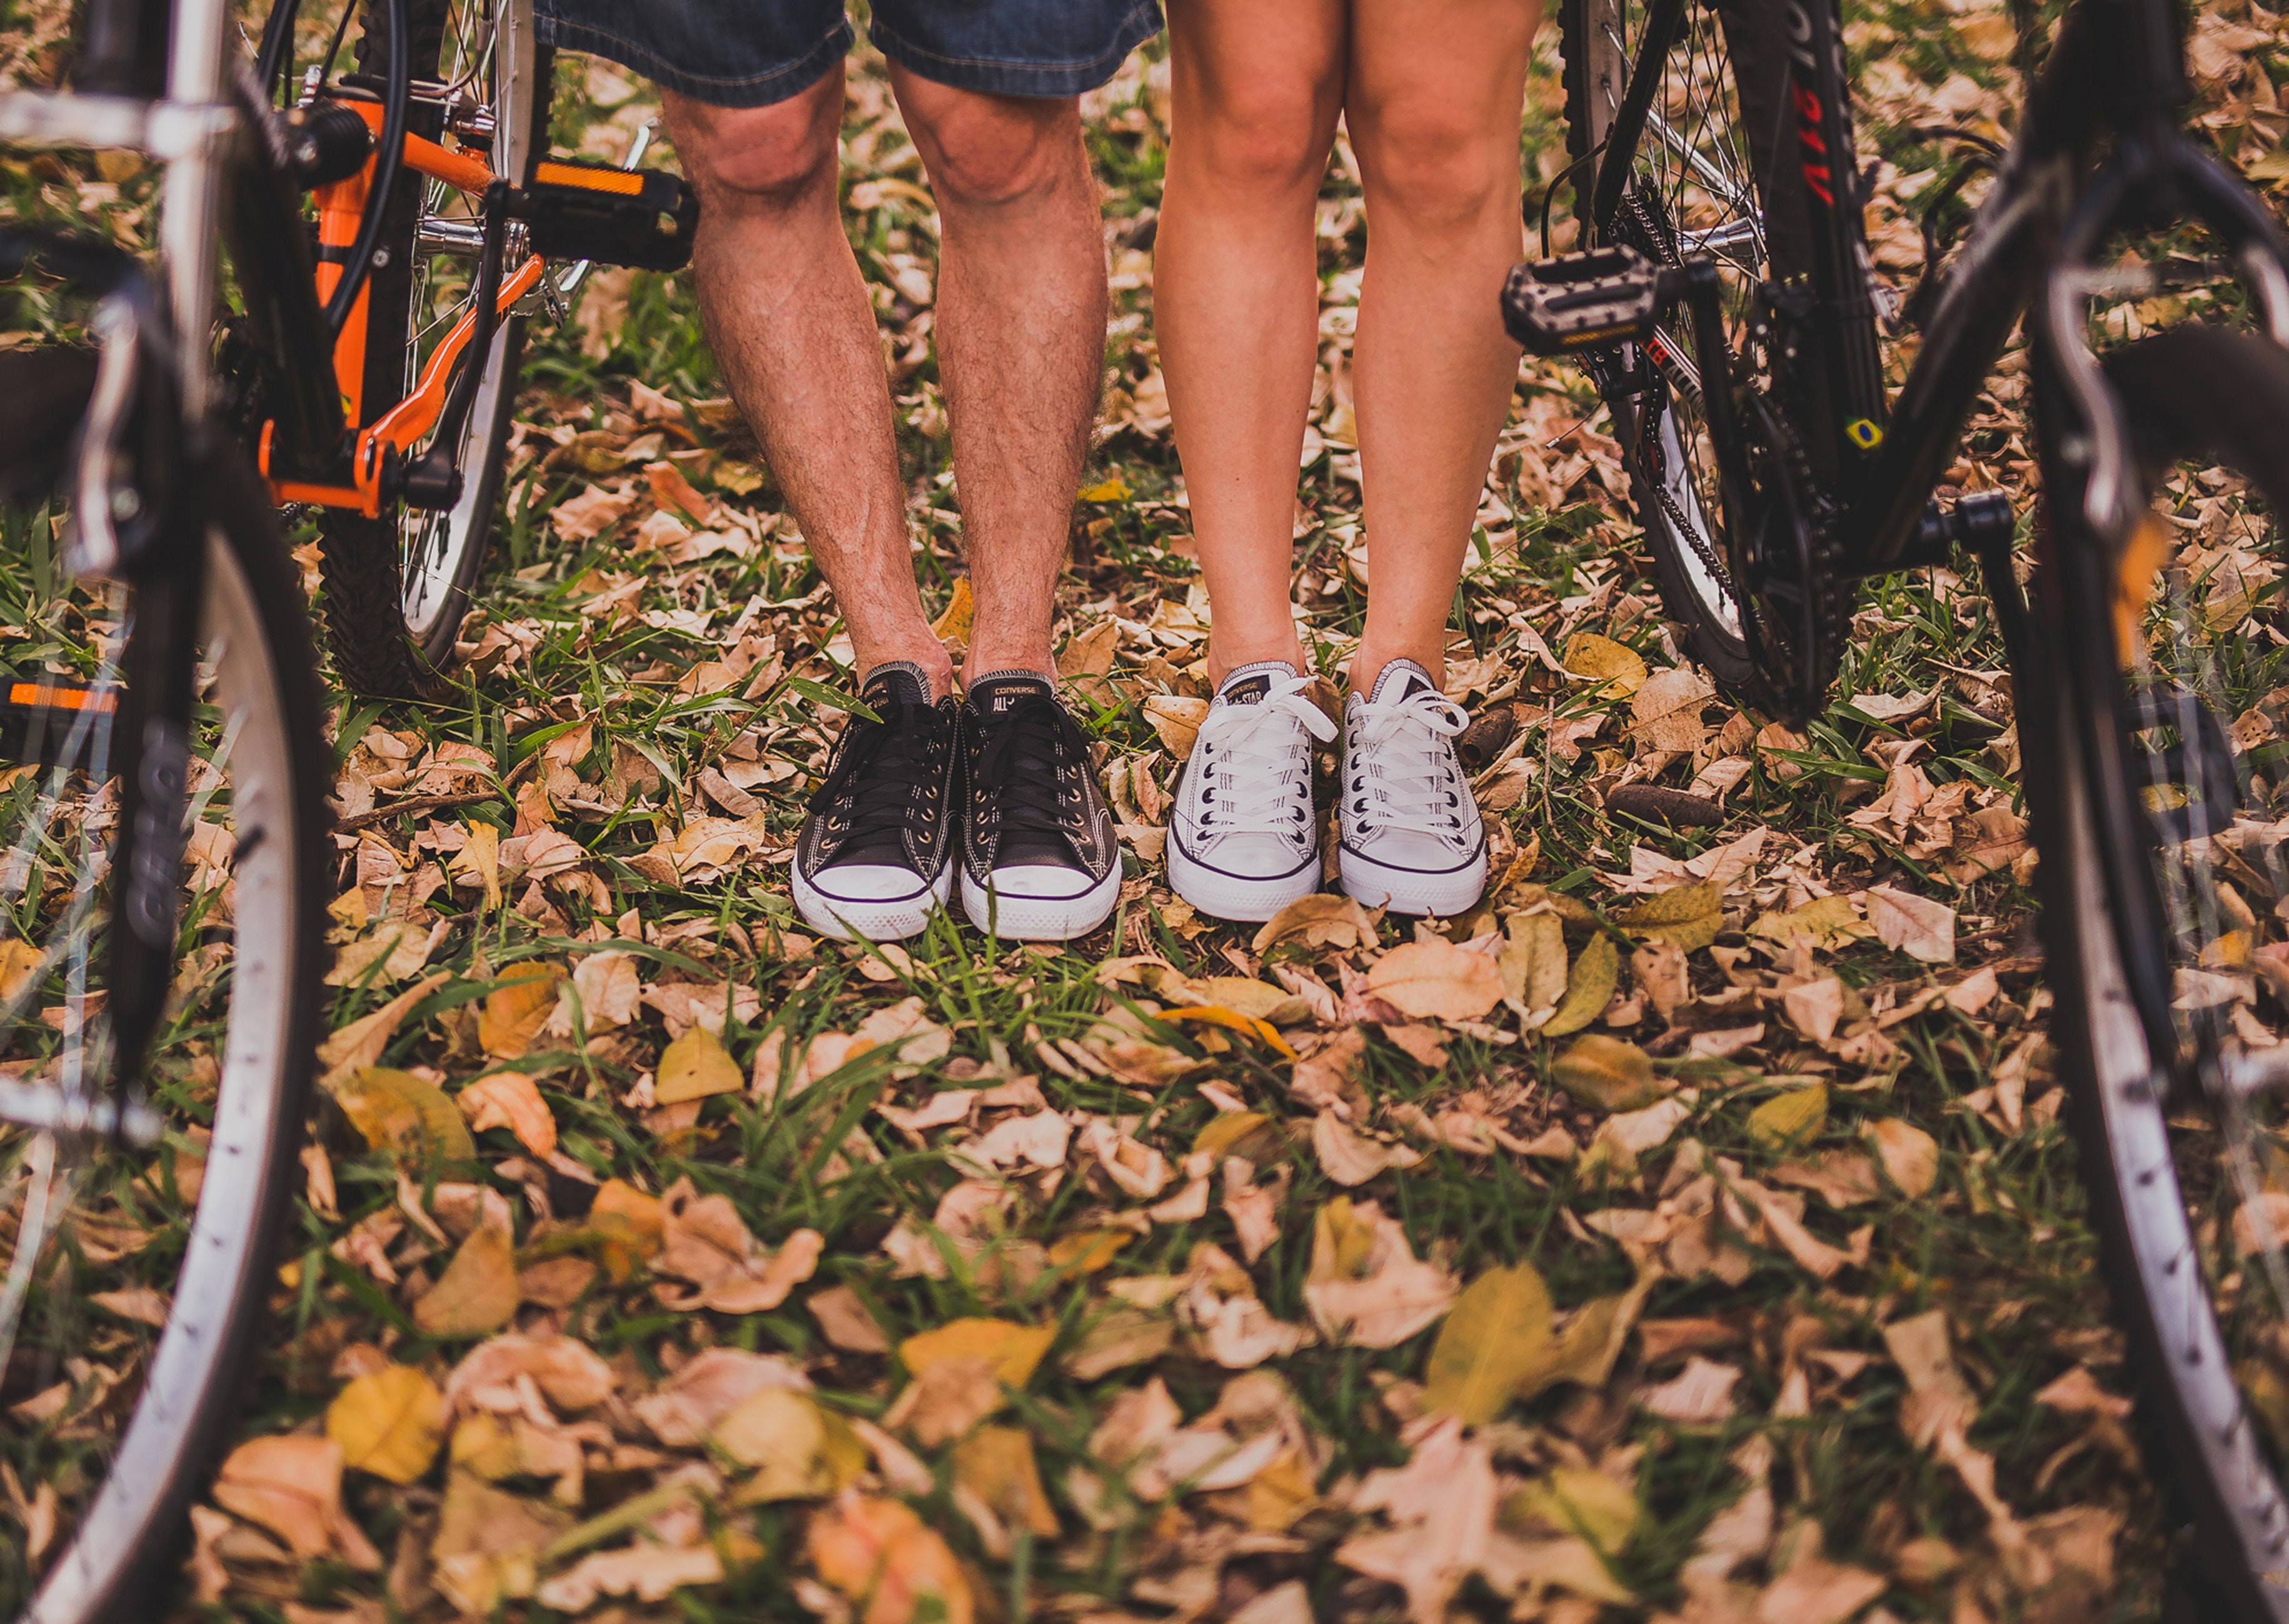 Image of a man a woman's legs with bicycles